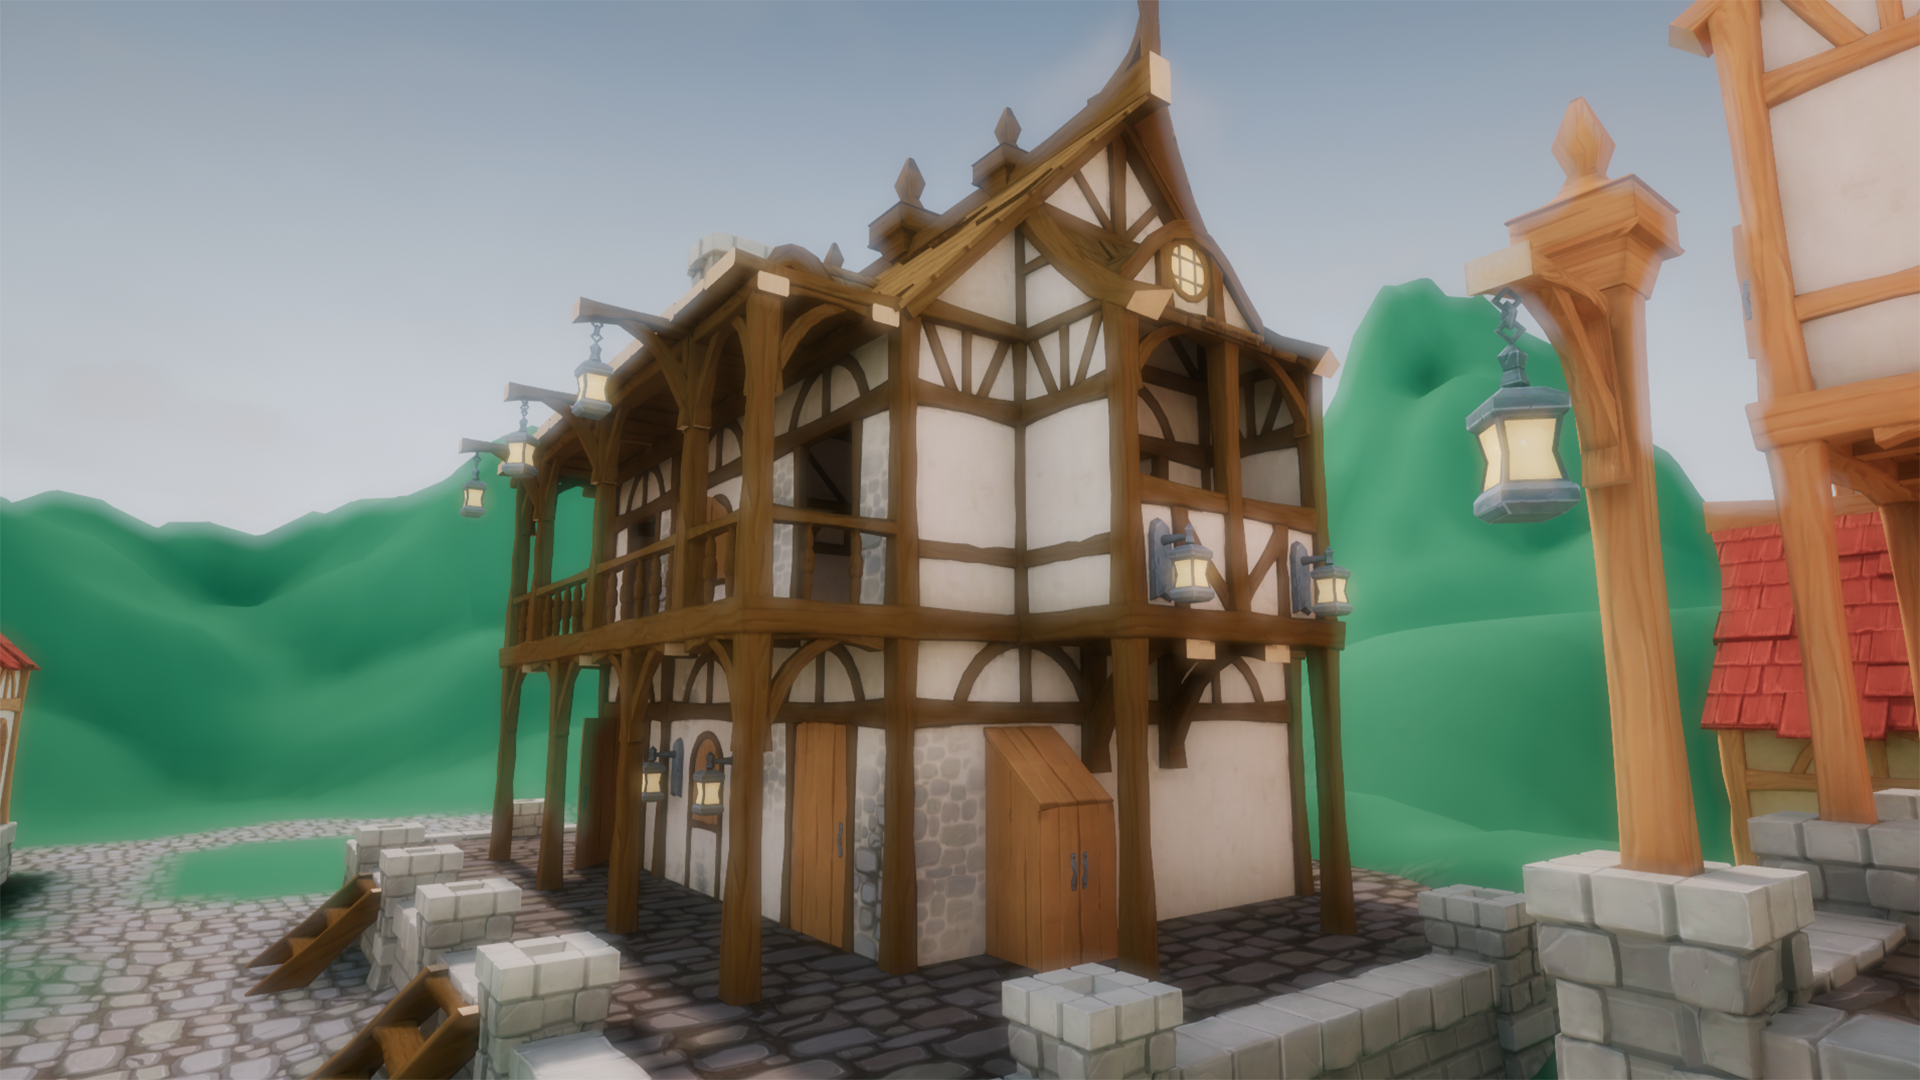 Stylized Modular Medieval Town by Auriam in Environments